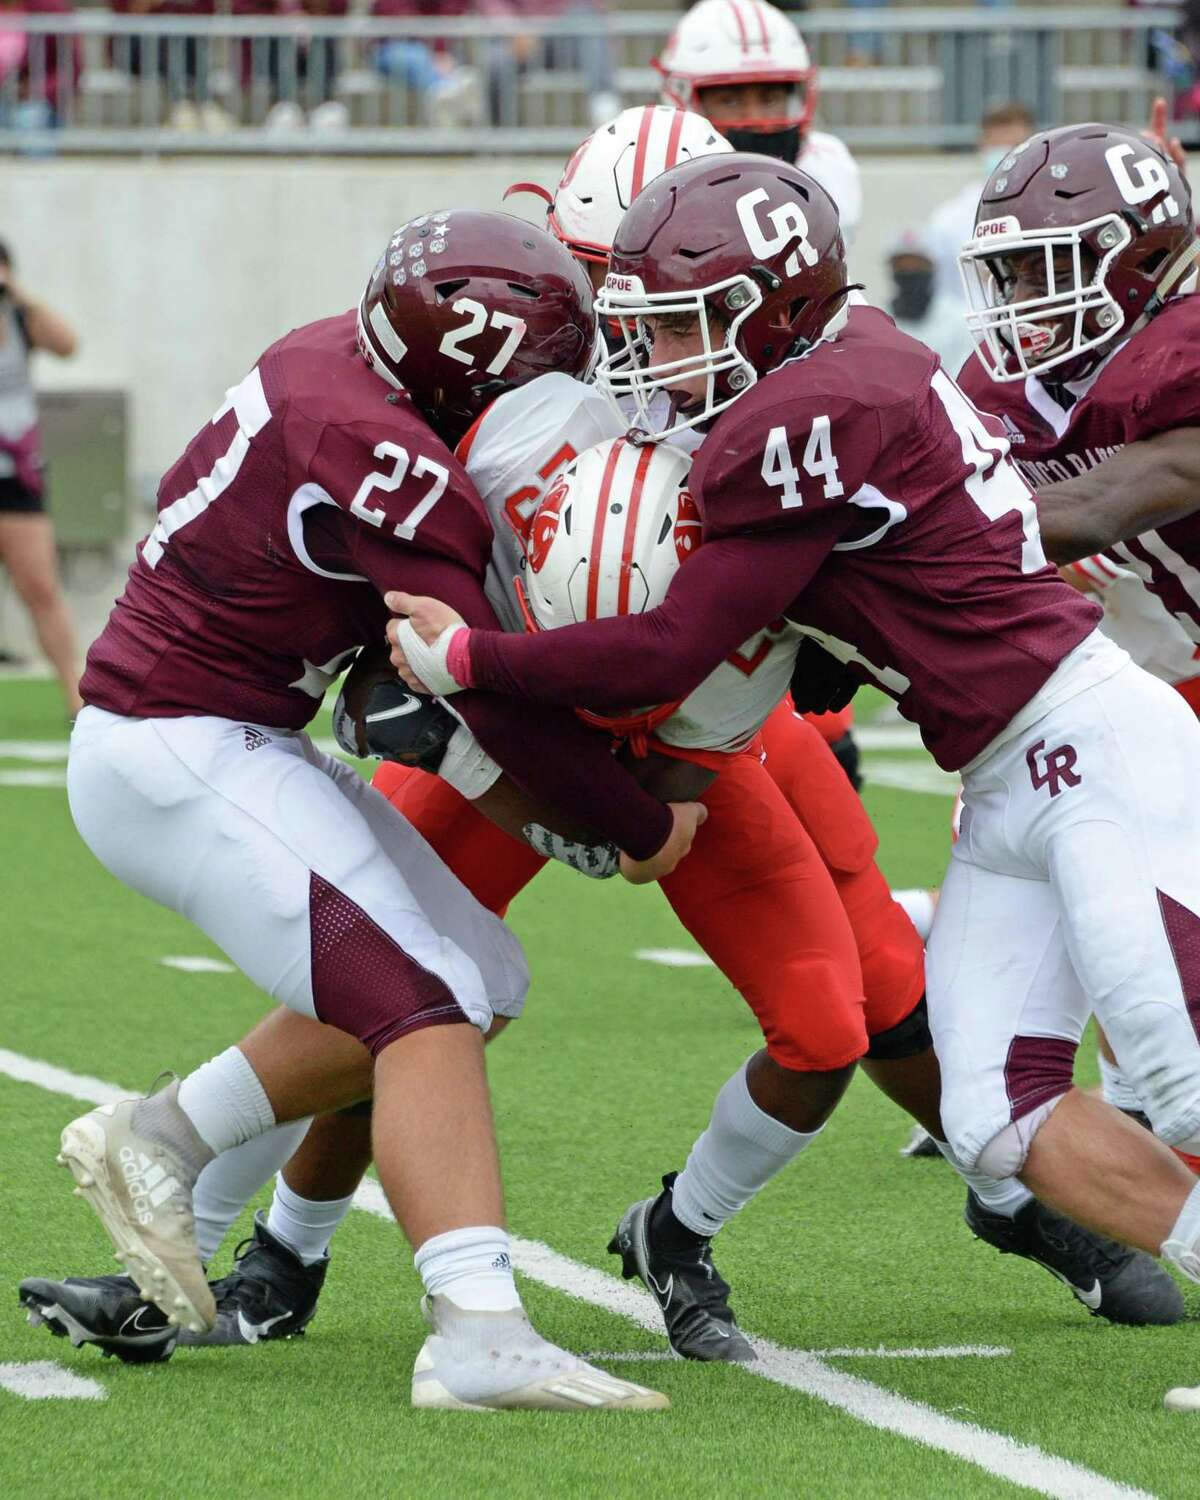 Nathan Rothwell (27) and Gracen Villafone (44) of Cinco Ranch tackle Seth Davis (23) of Katy during the second quarter of a 19-6A football game between the Cinco Ranch Cougars and the Katy Tigers on Saturday, October 24, 2020 at Legacy Stadium, Katy, TX.